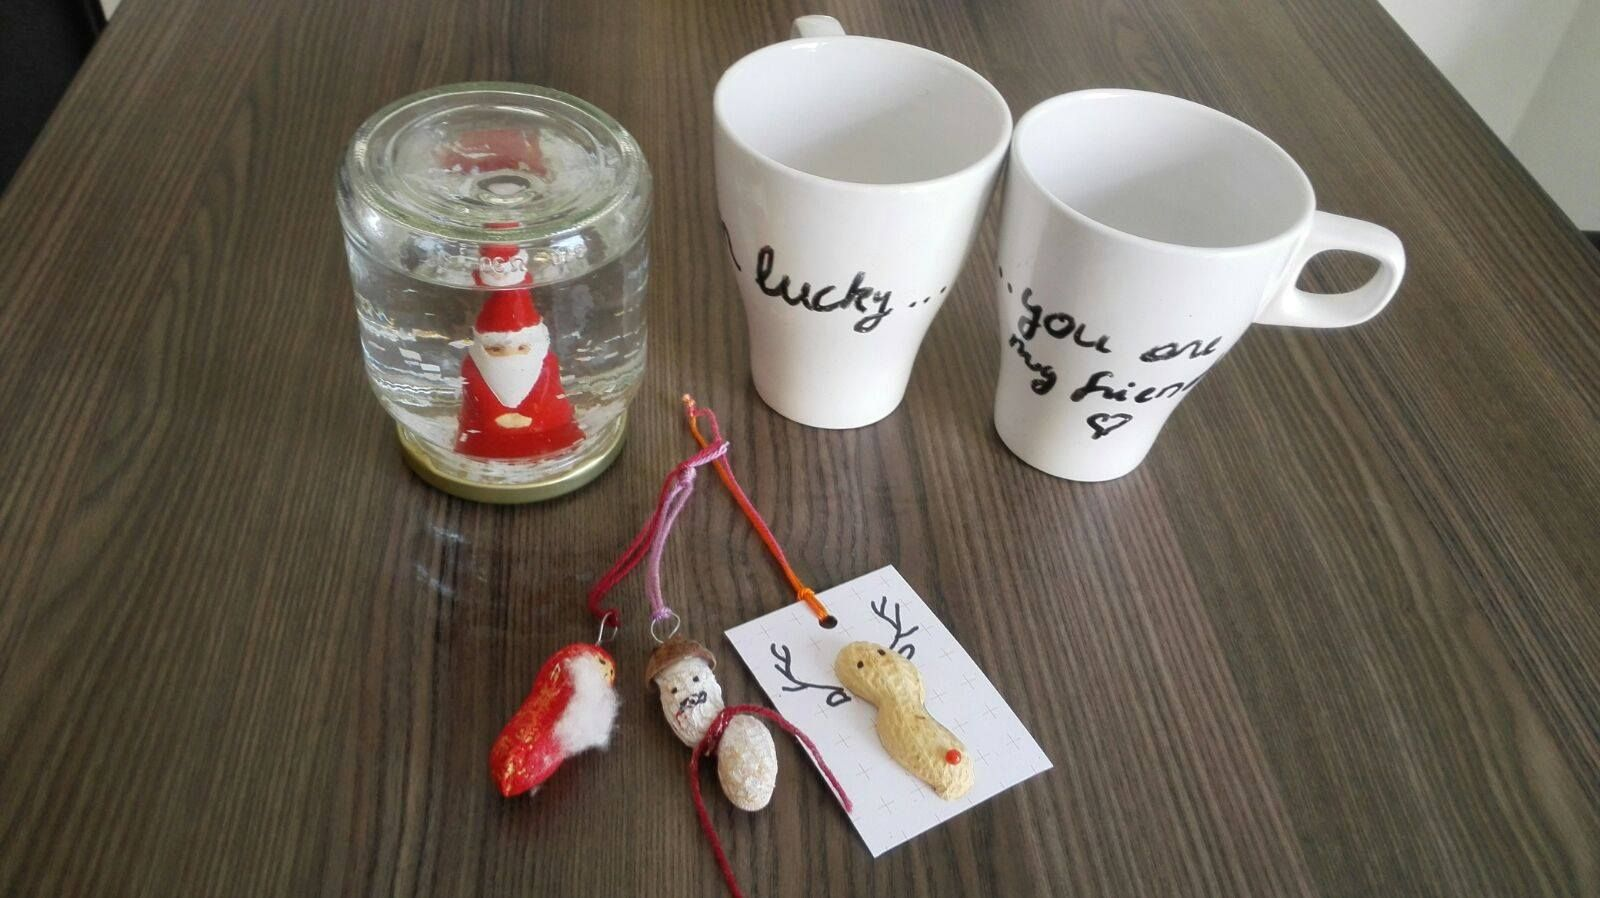 Perfecto4u organiza una sesi n de bricolaje con ideas for Ideas de detalles para regalar